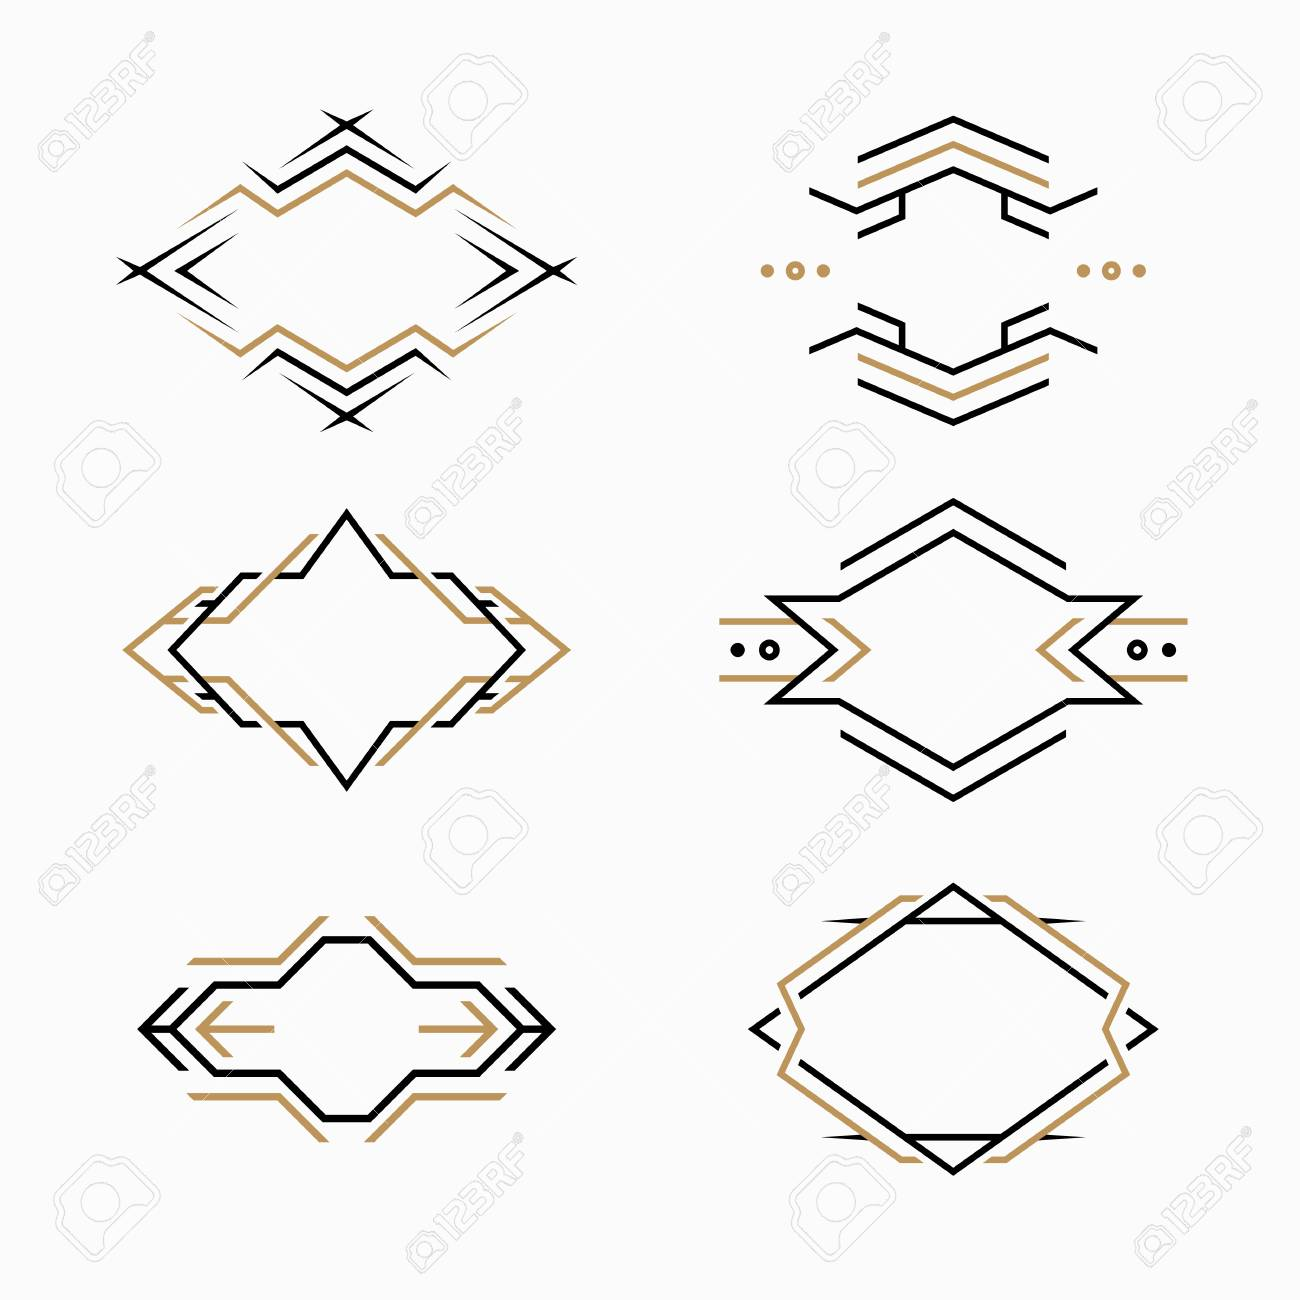 the set of hipster logo emblem templates vector frames in modern